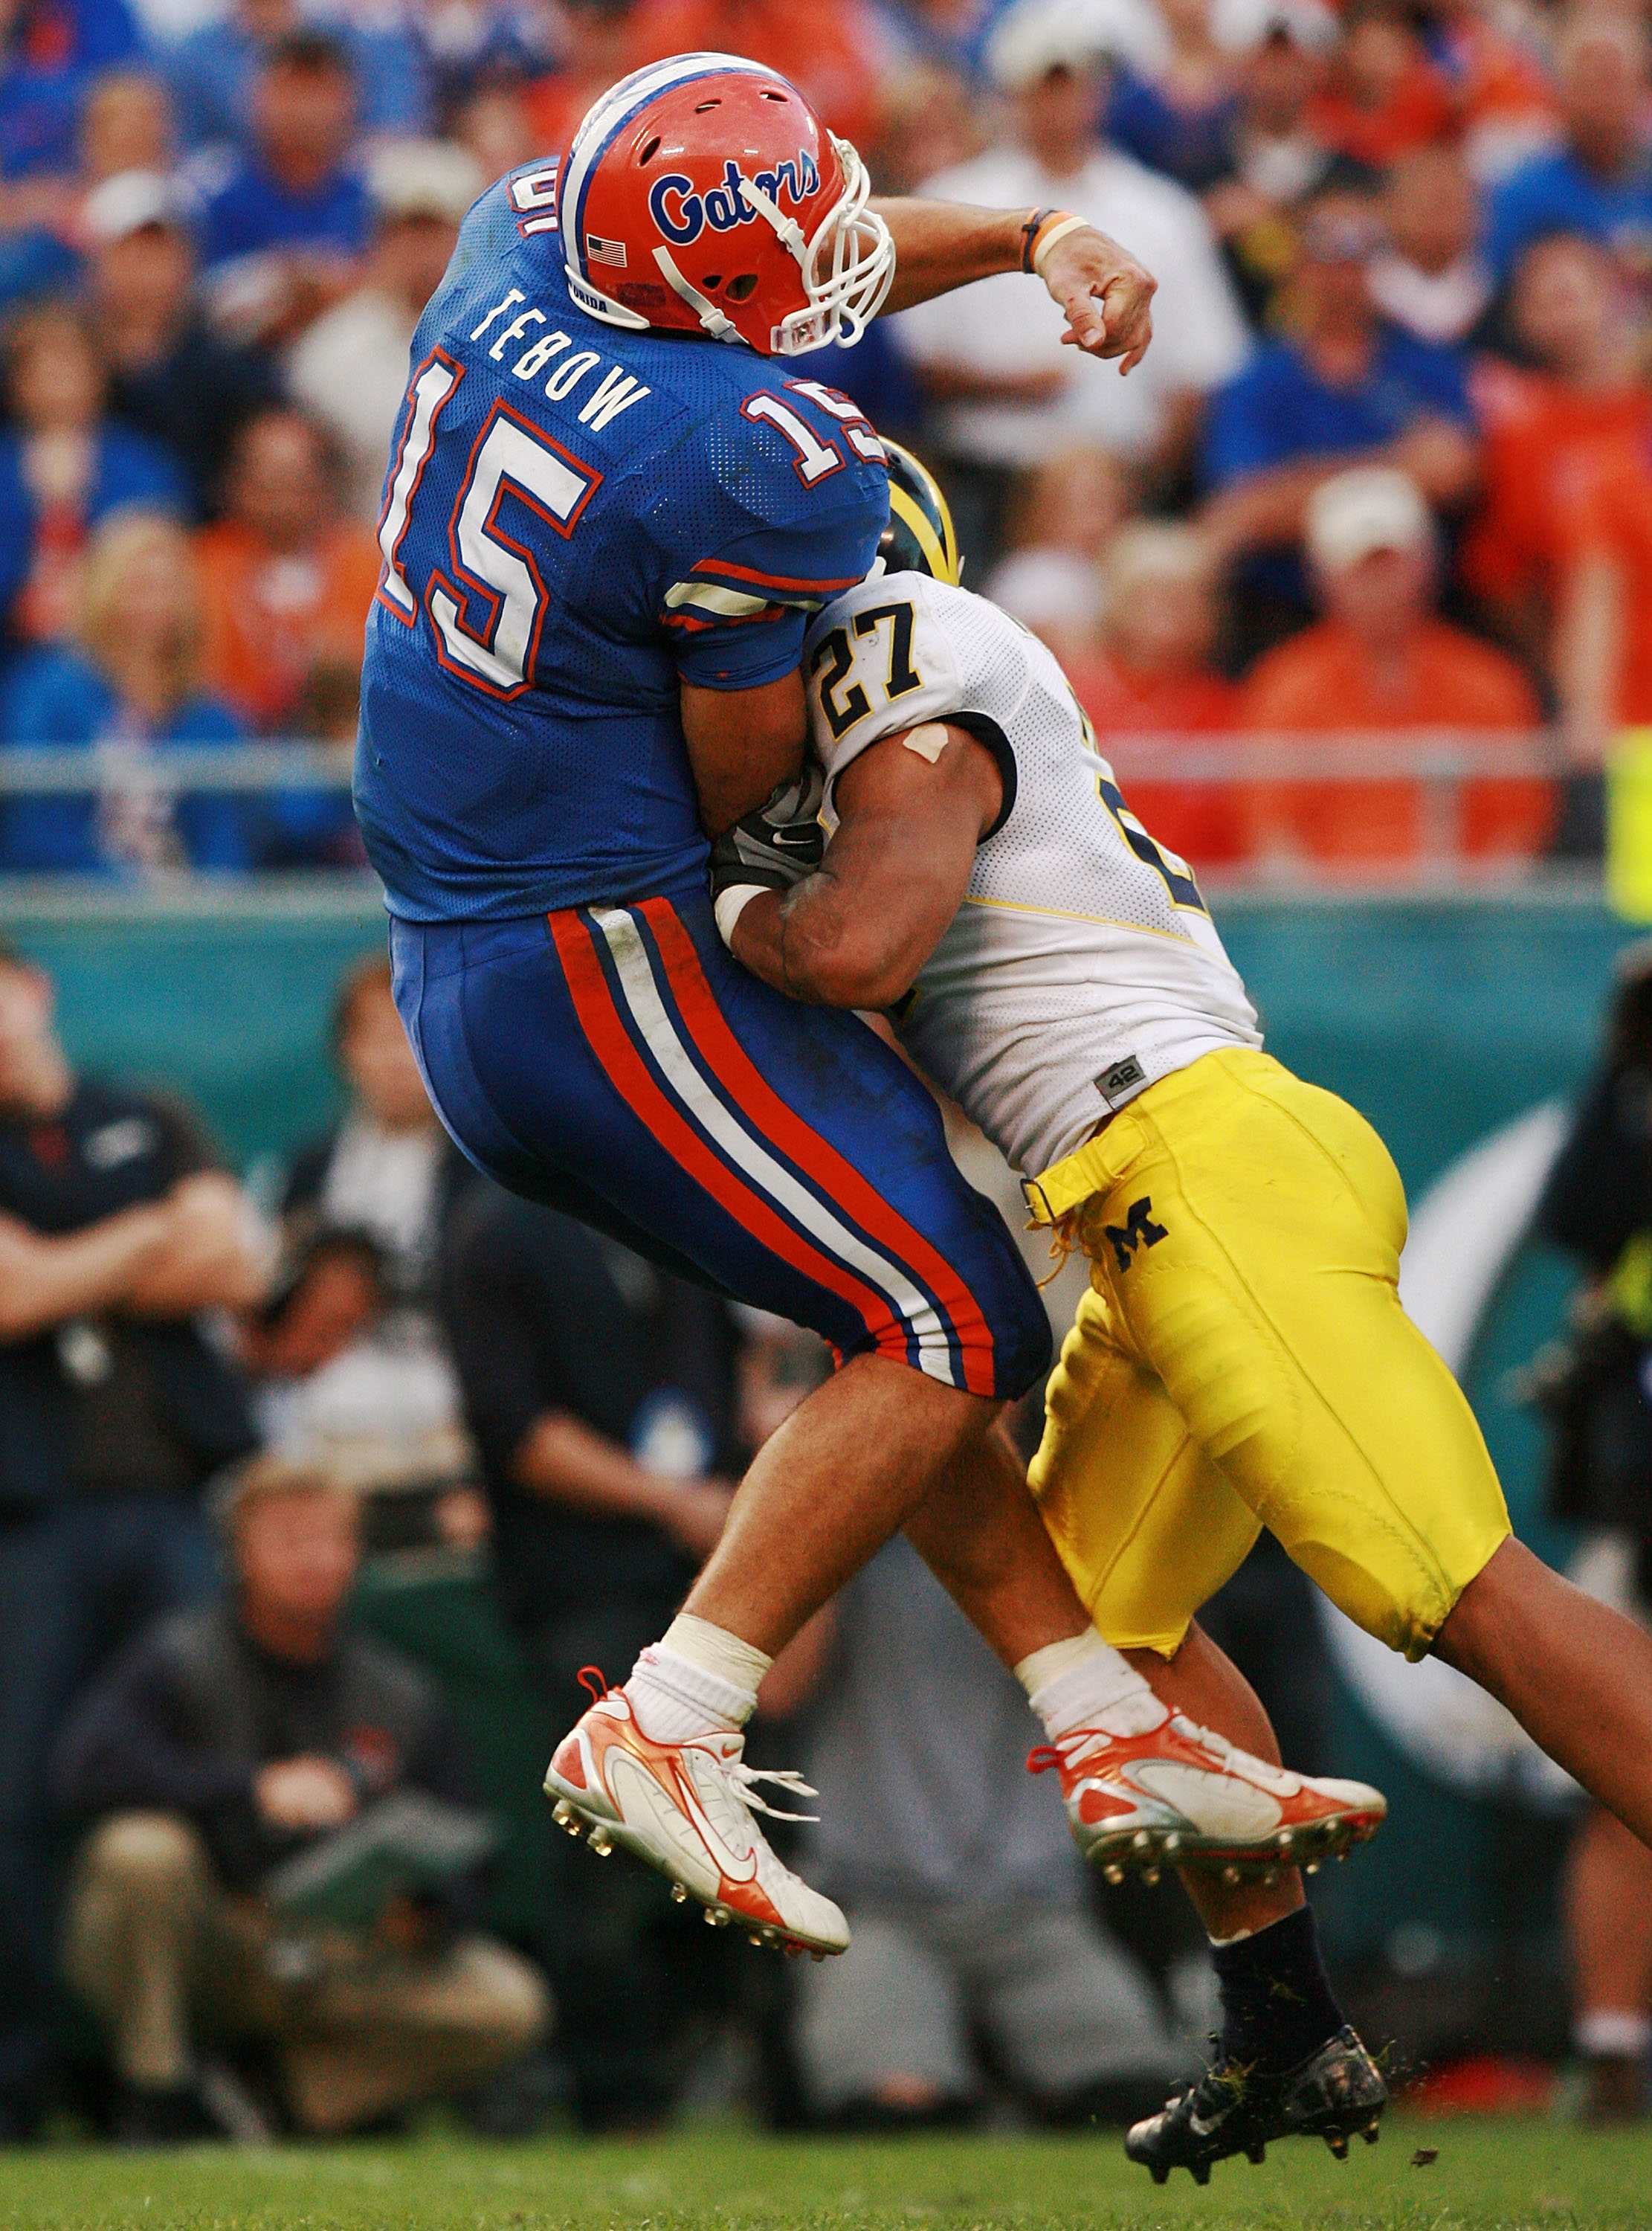 Heisman winner Tim Tebow and Florida were stunned by Michigan in January 2008